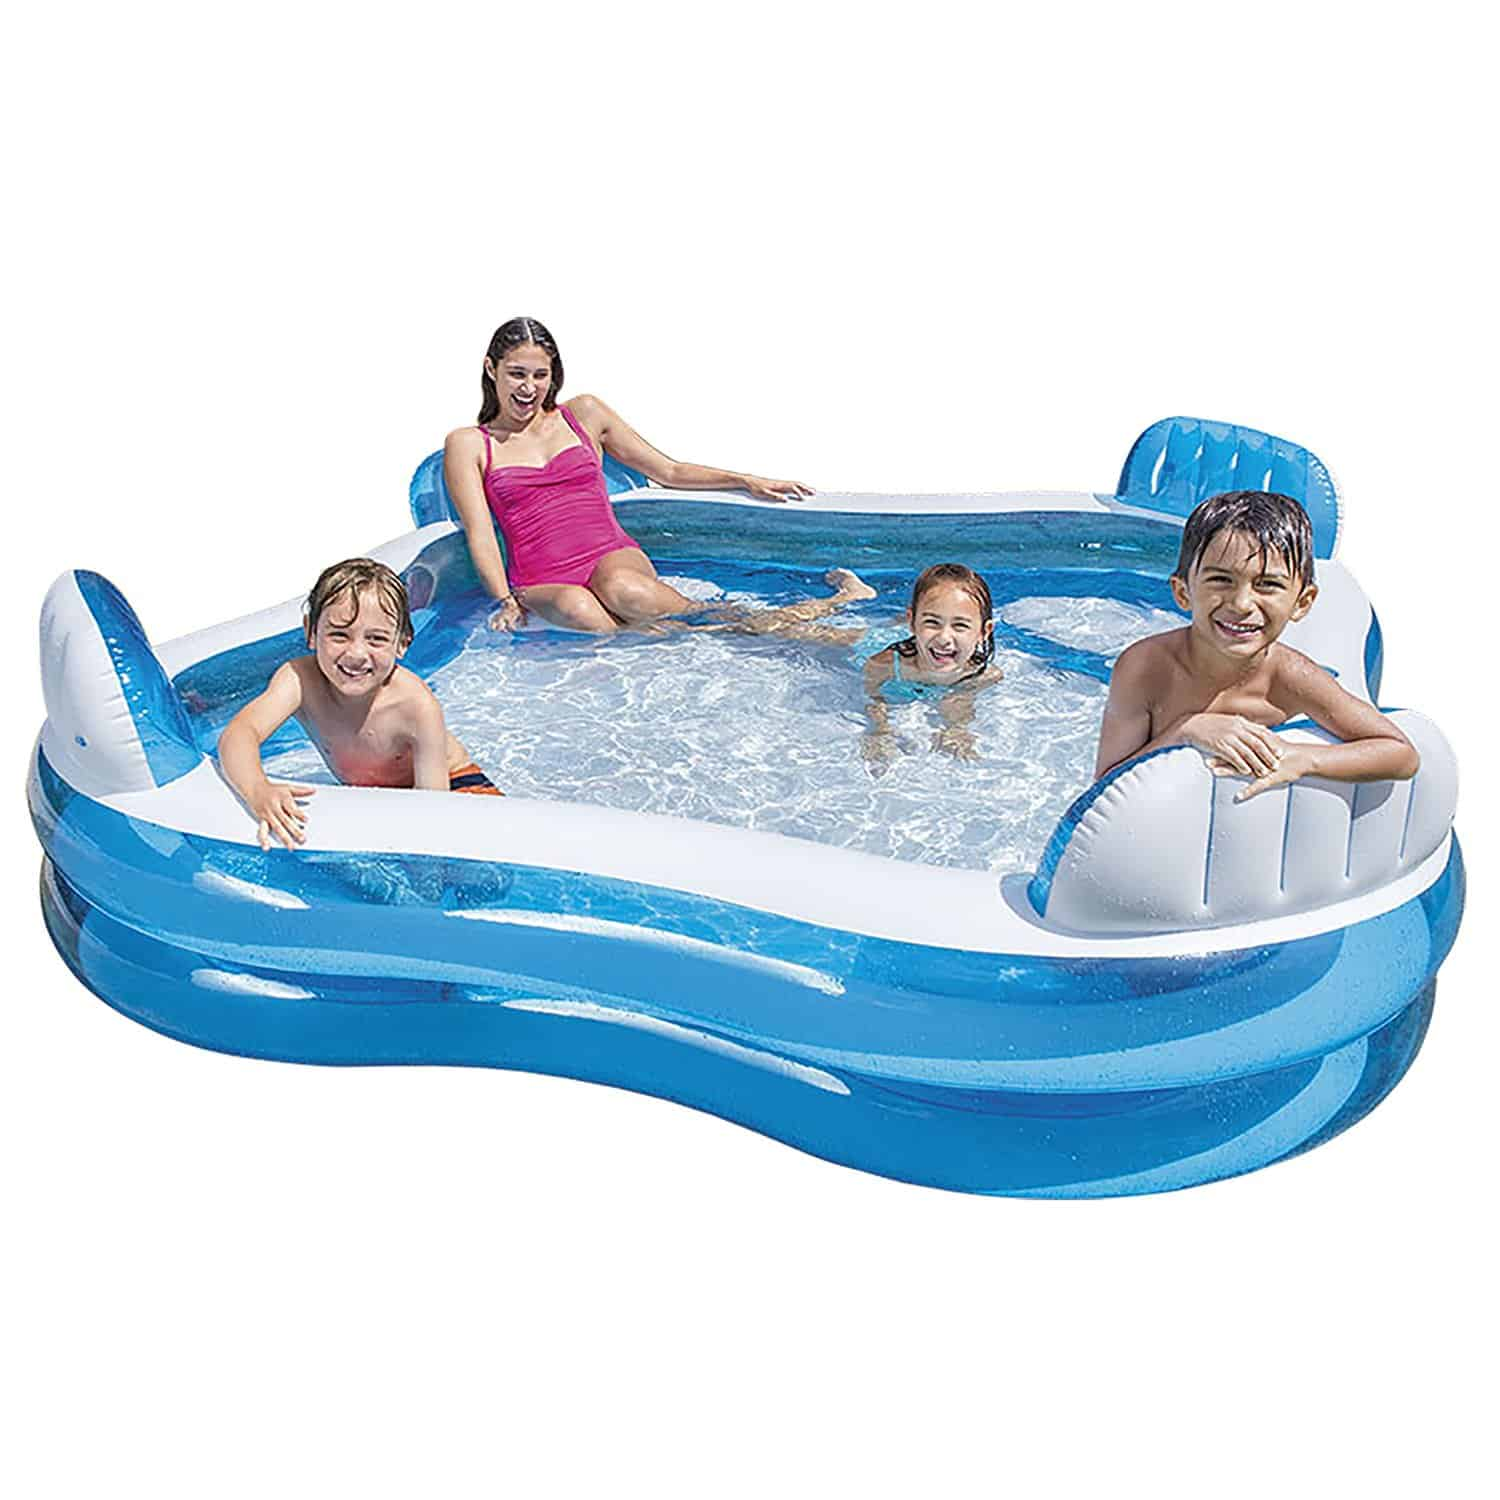 Best Family Inflatable Pool With Seats